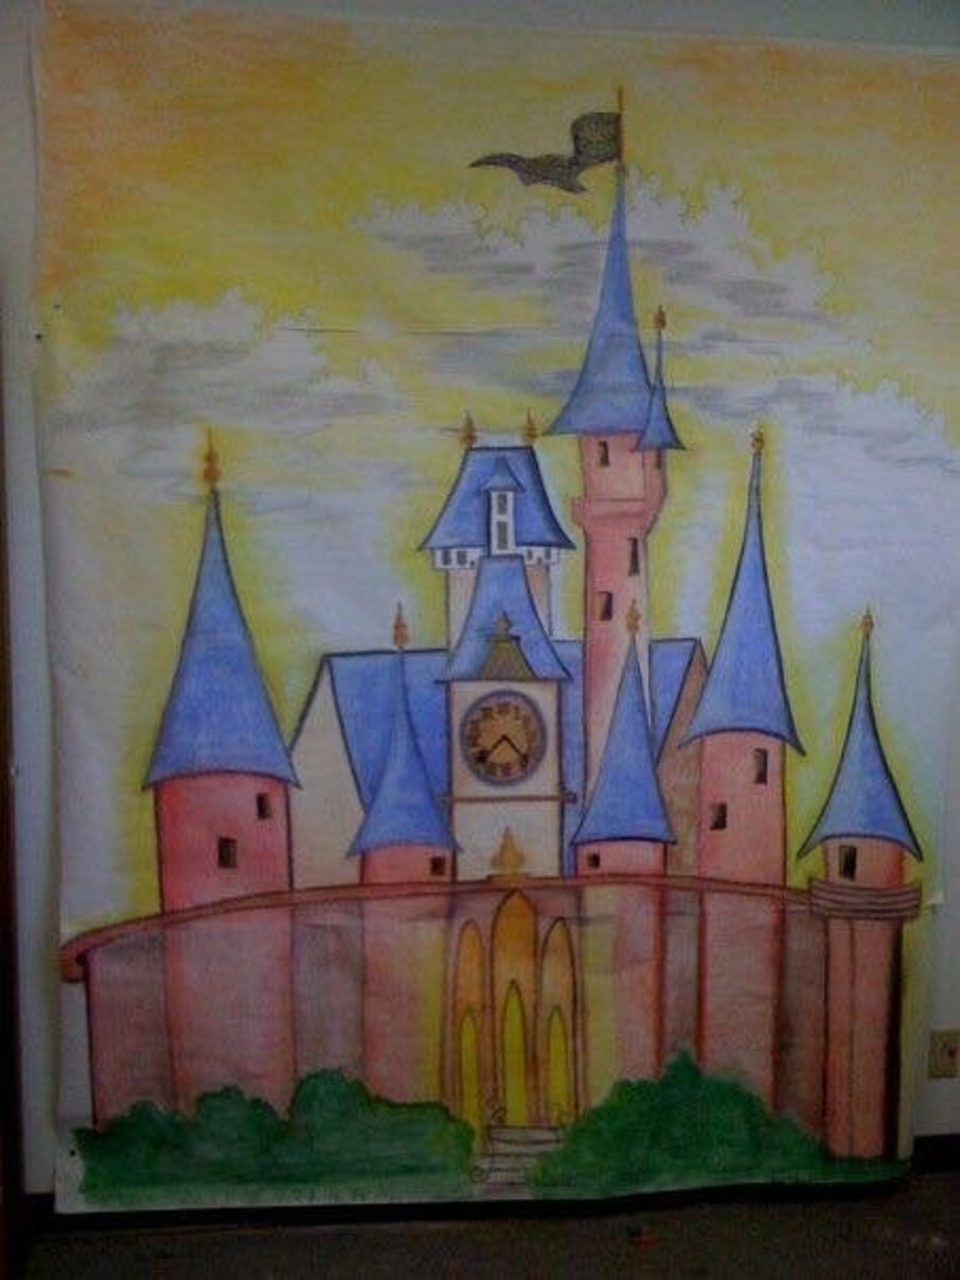 Timeless painting by renee   custom painting   faux finishing   tulsa oklahoma   completed large children's mural on canvas princess castle for birthday photos 1